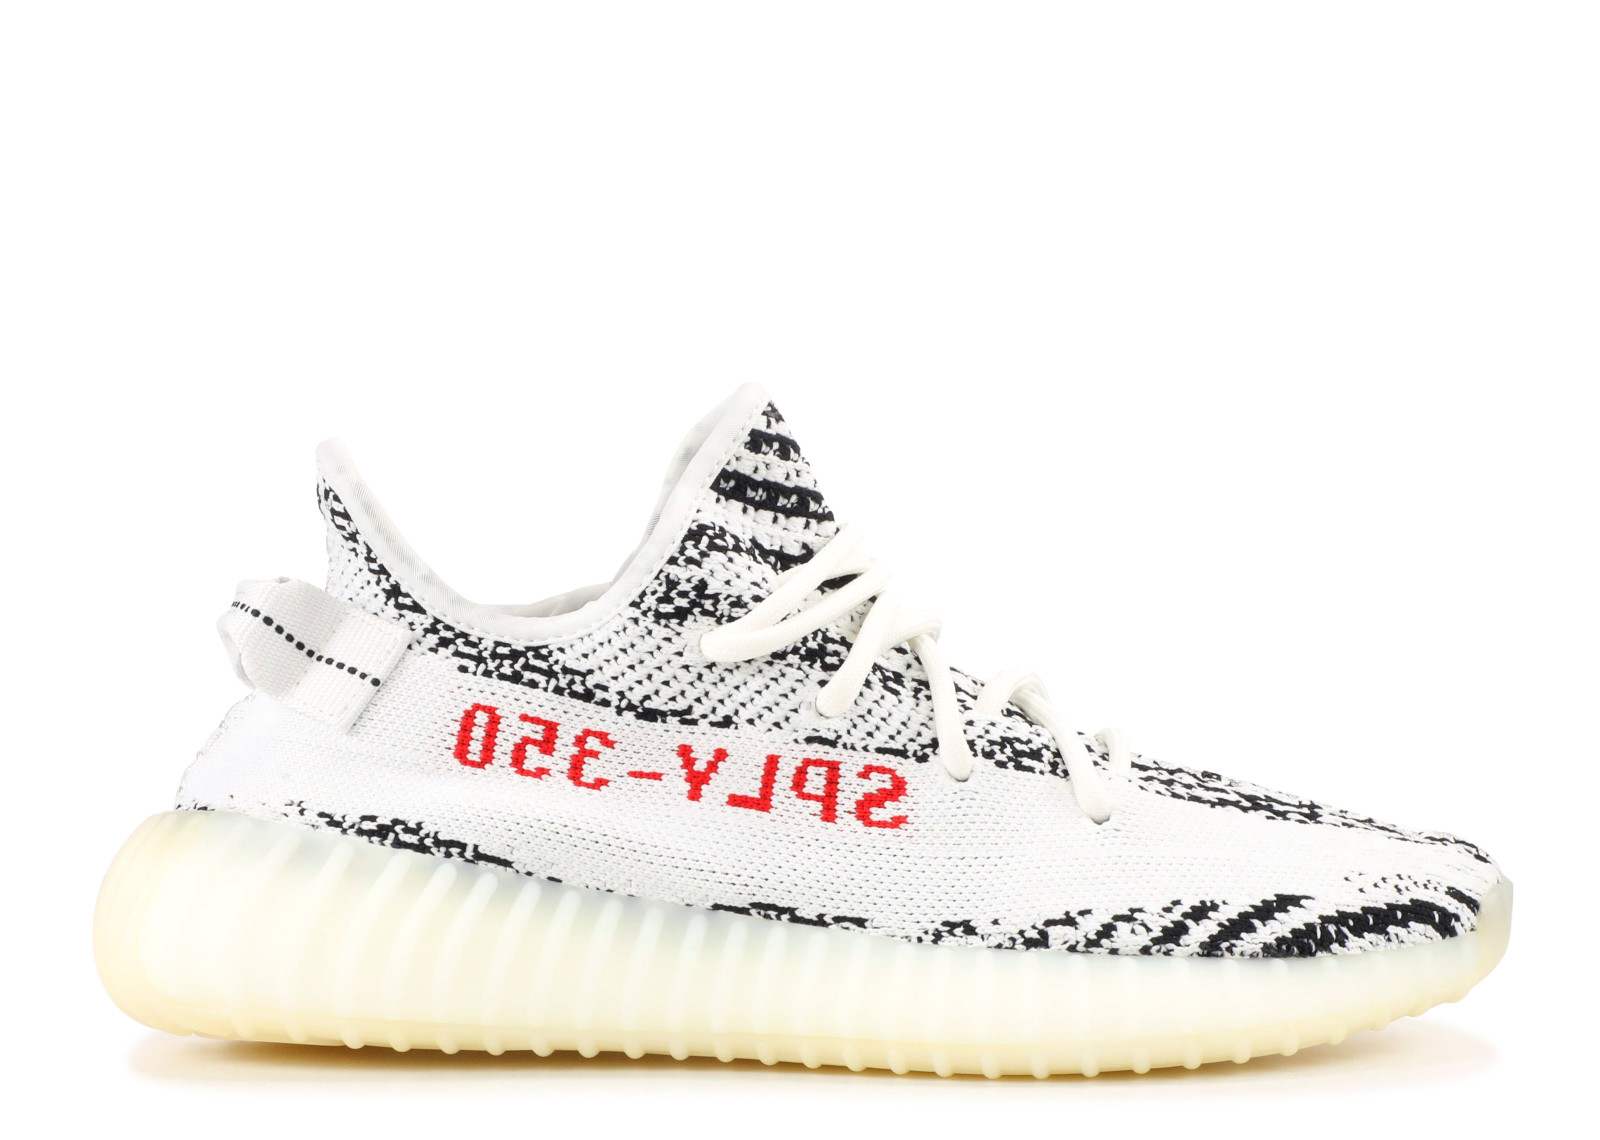 innovative design d8c0c 75a30 adidas and the YEEZY brand will be re-releasing another run of the ZEBRA  YEEZY BOOST colorway on November 9th. Originally released in 2017, ...